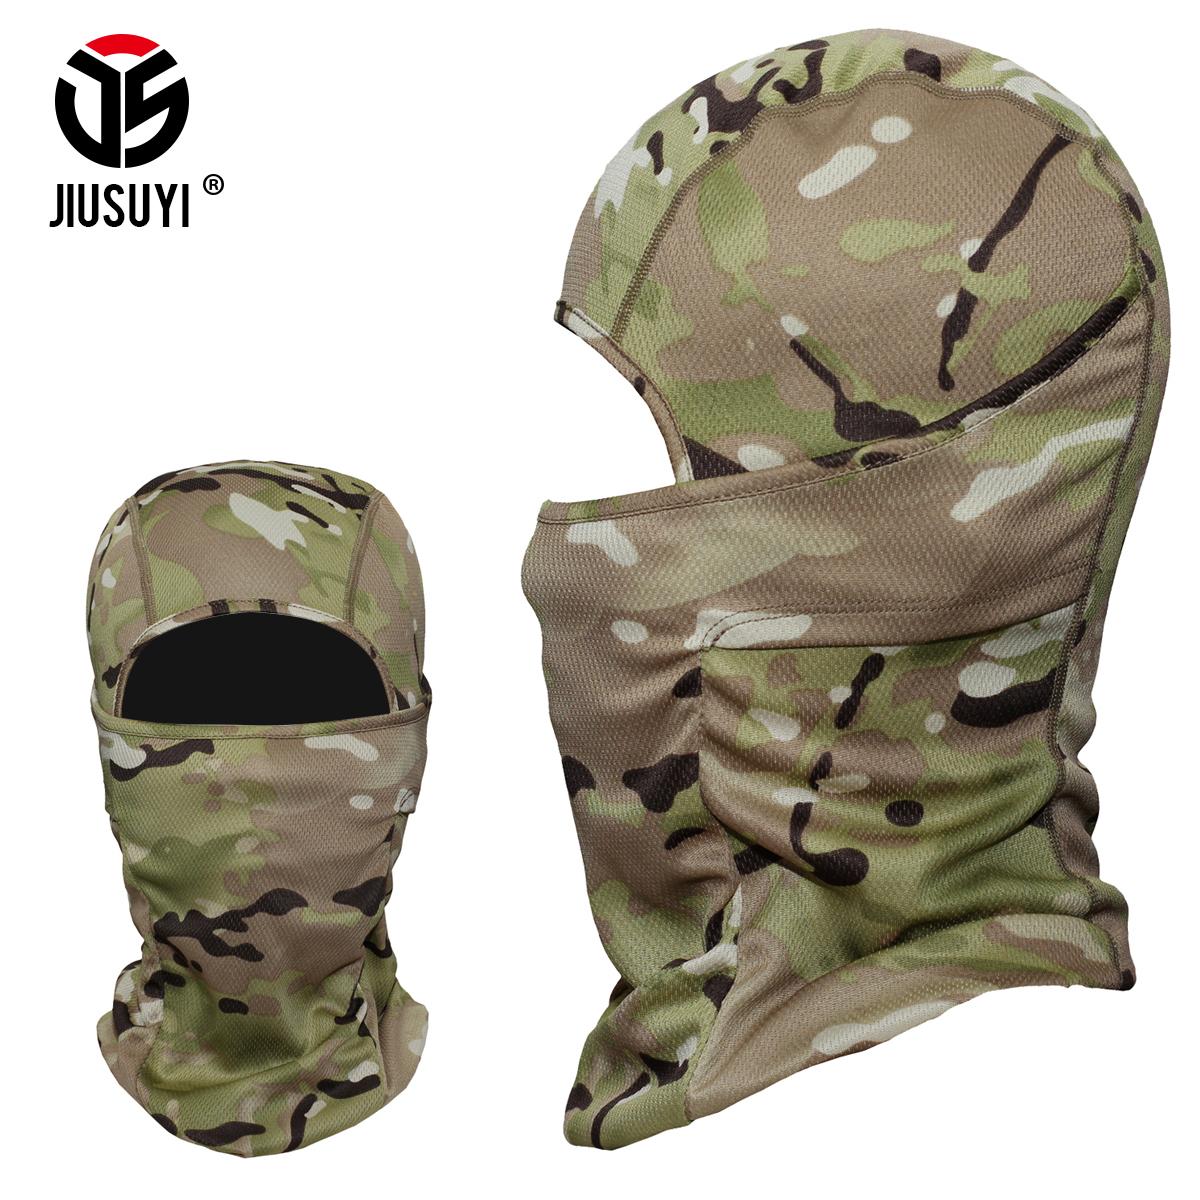 Multicam Cp Tacitcal Military Army Balaclava Airsoft Snowboard Bicycle Winter Warmer Camouflage Hats Helmet Liner Full Face Mask